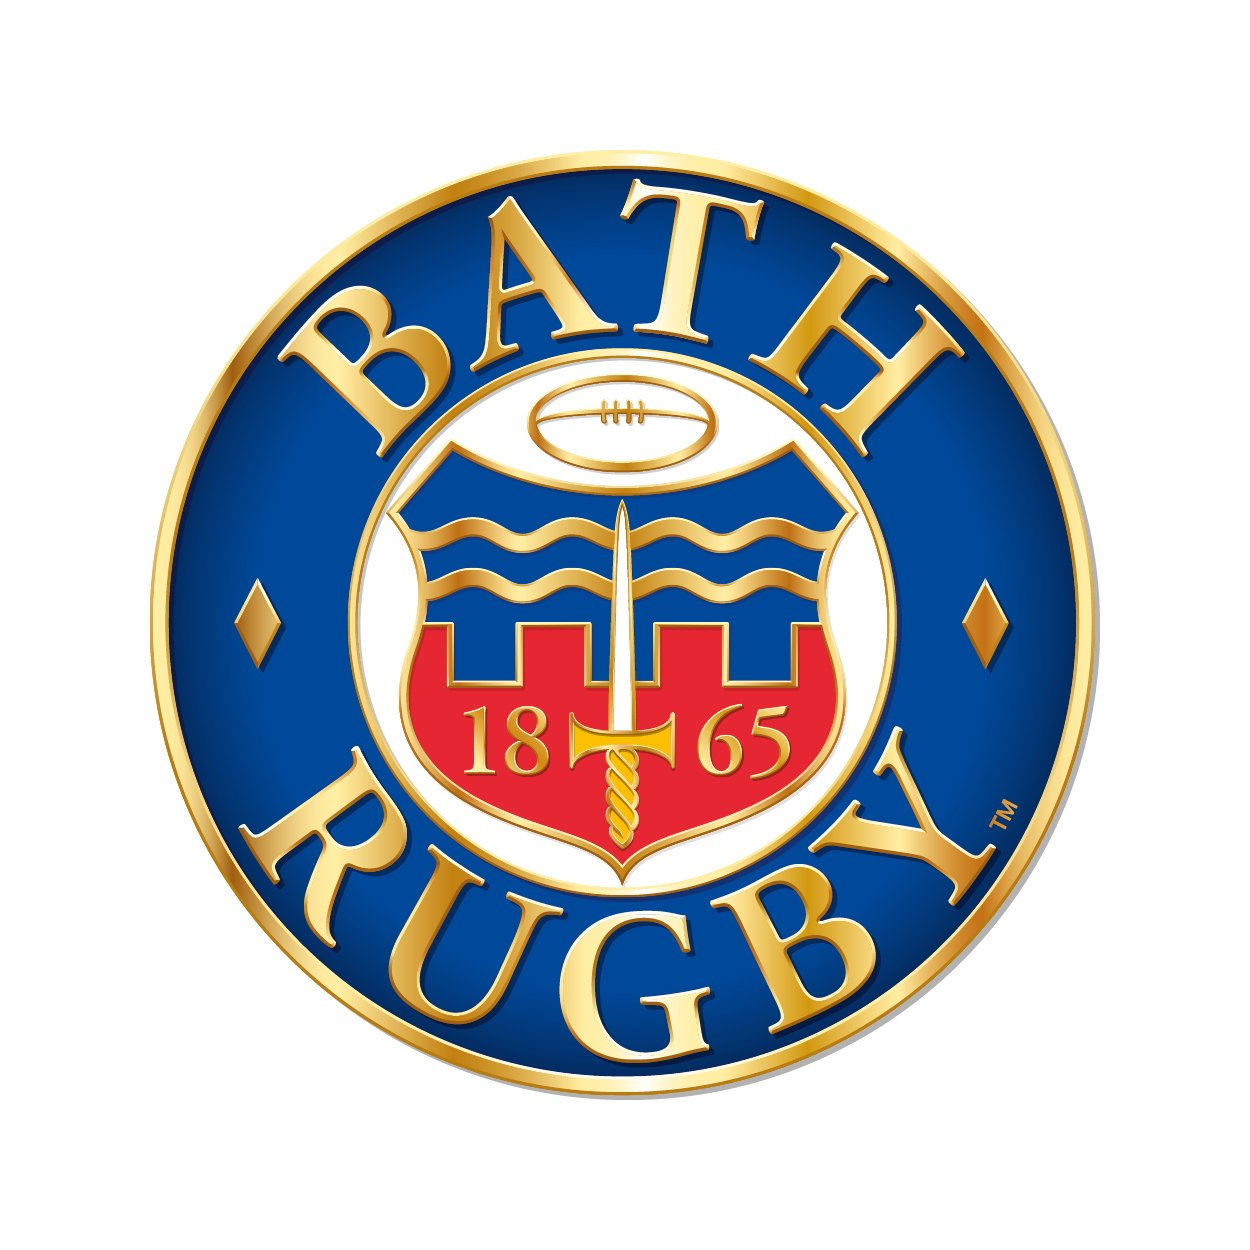 Category: Rugby Union